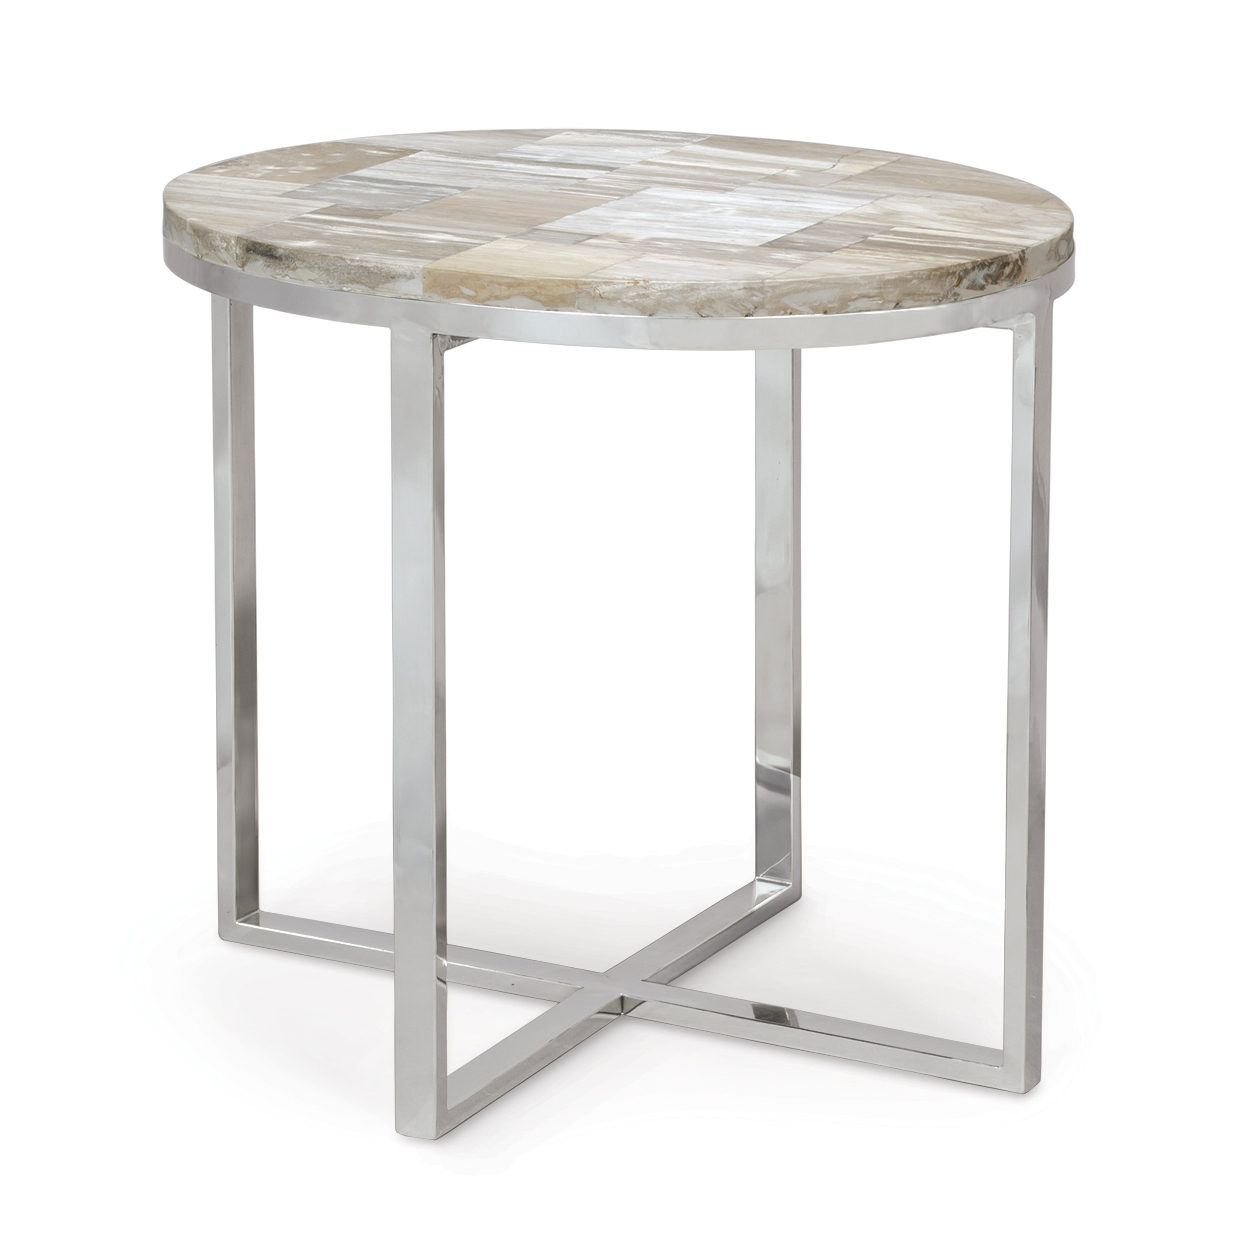 Description. PETRIFIED WOOD OVAL SIDE TABLE